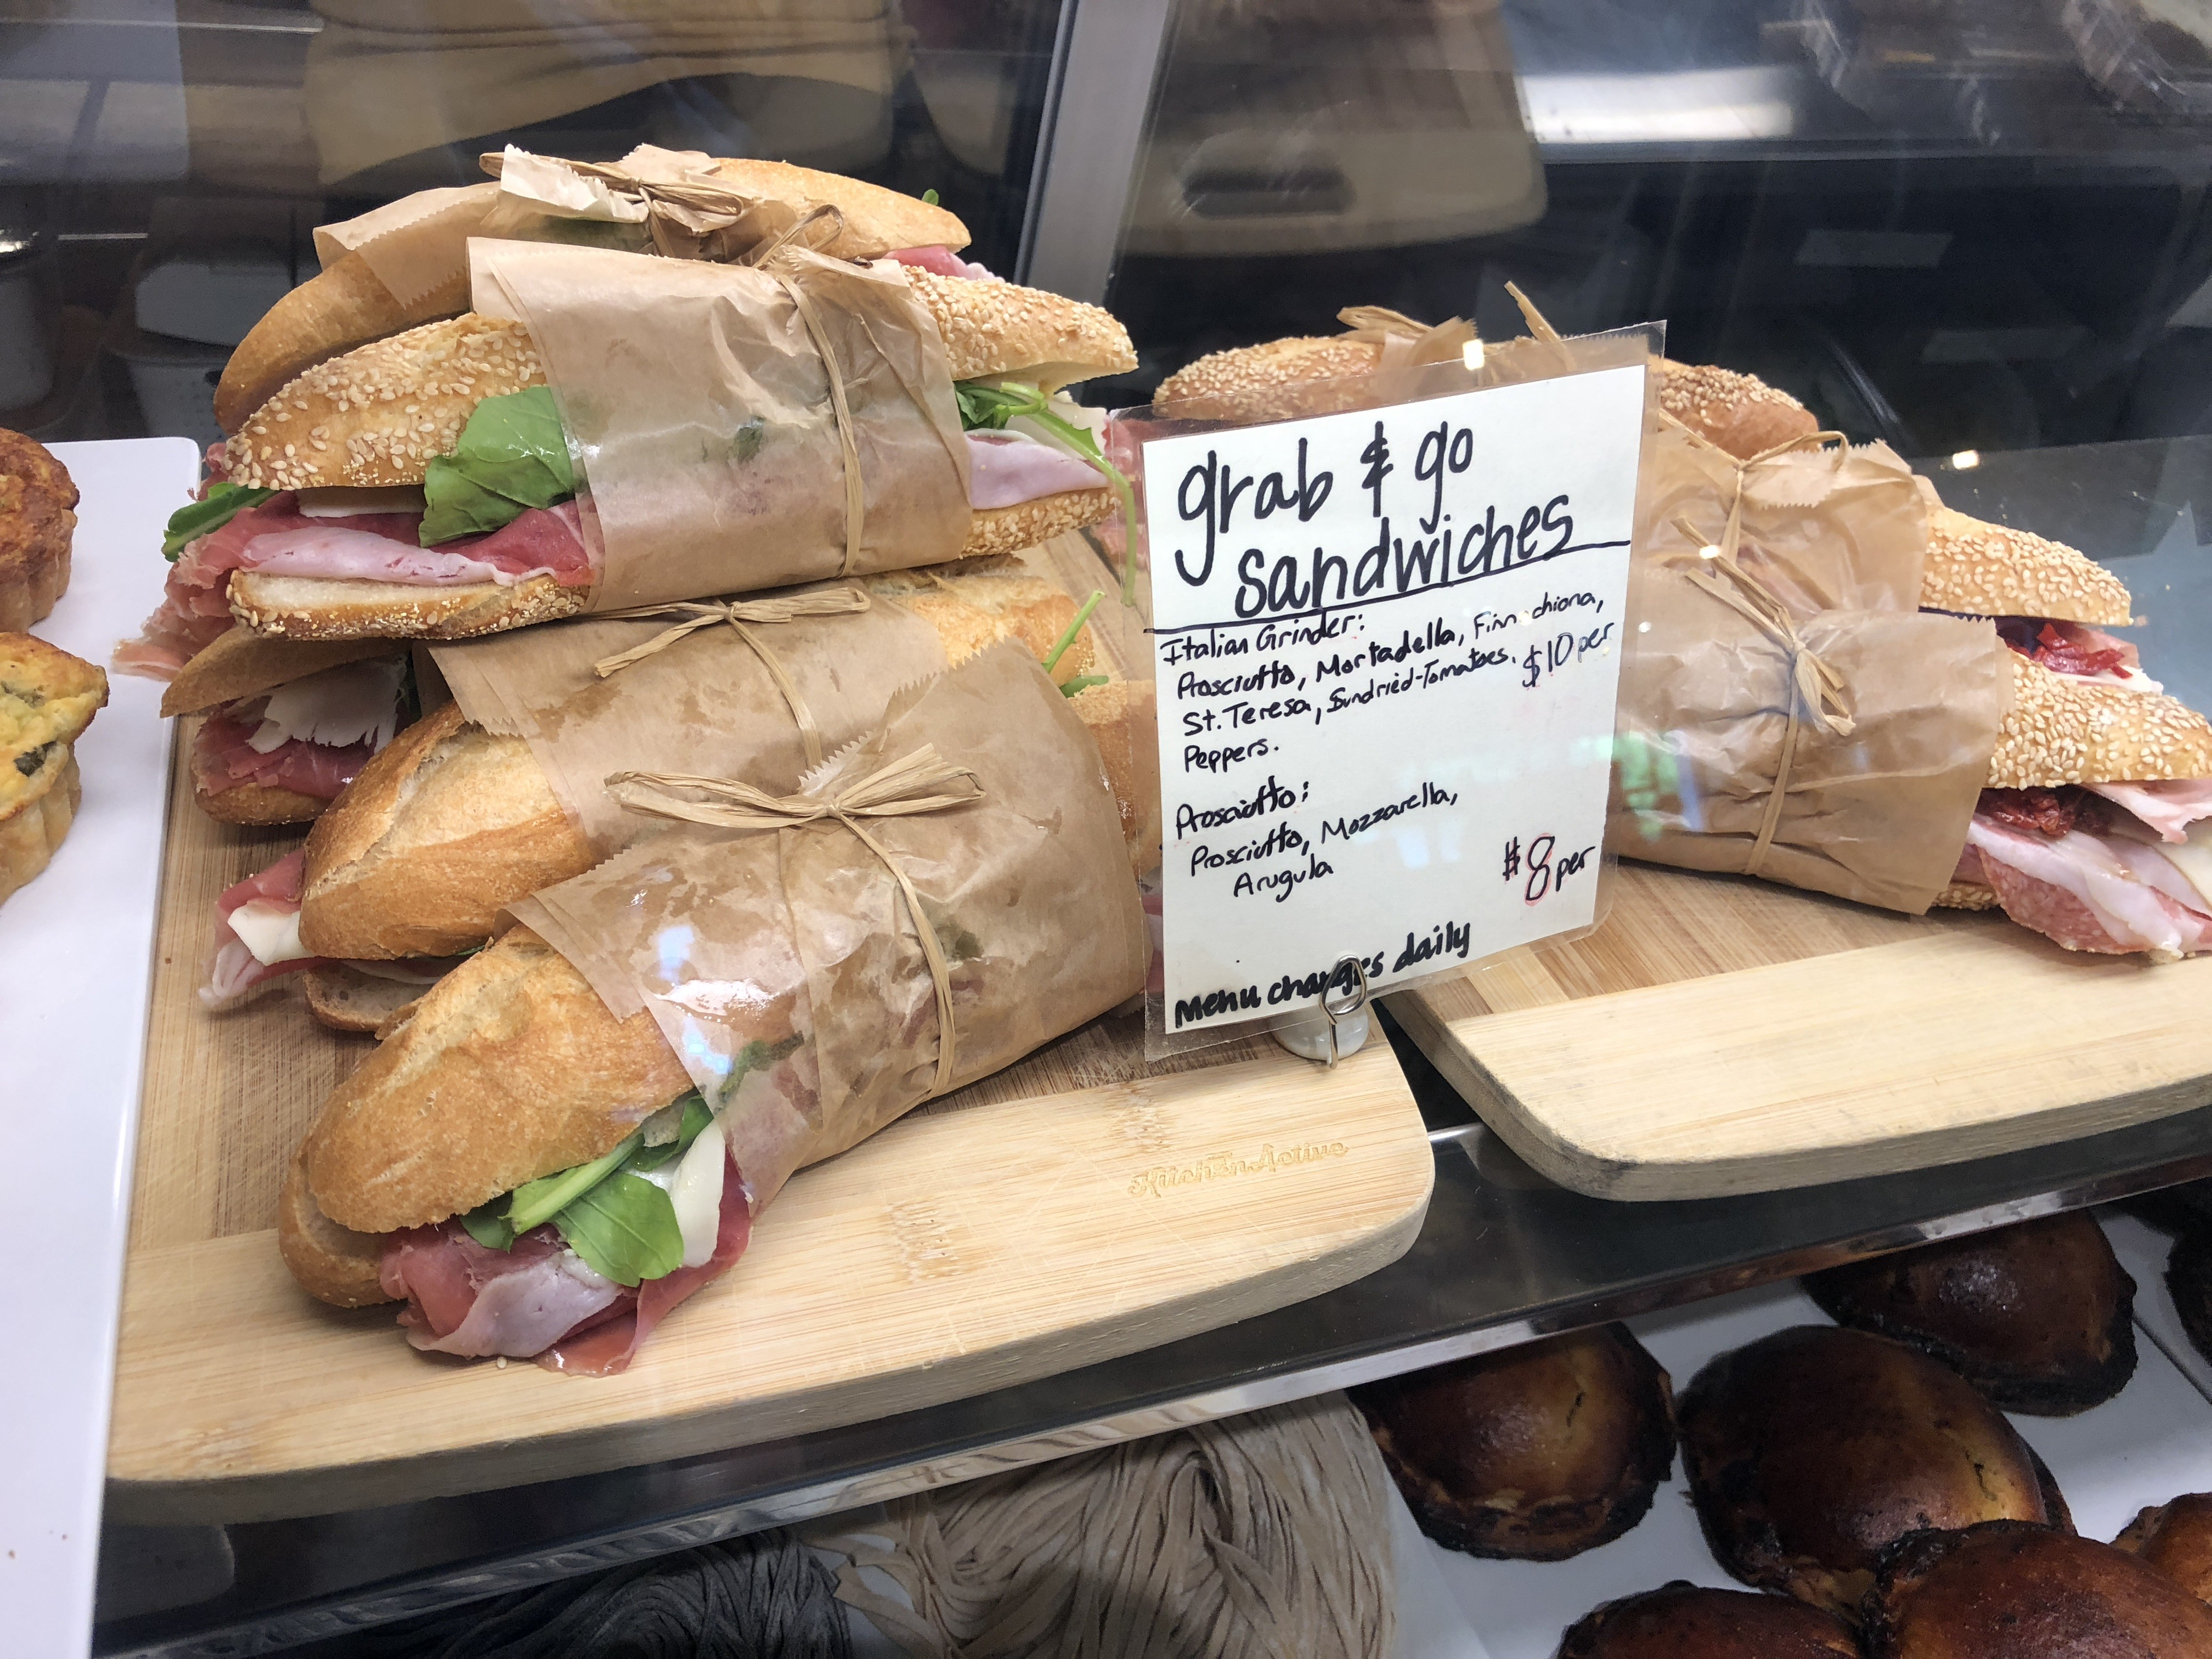 Sandwiches to grab and go at Storico Frescco.